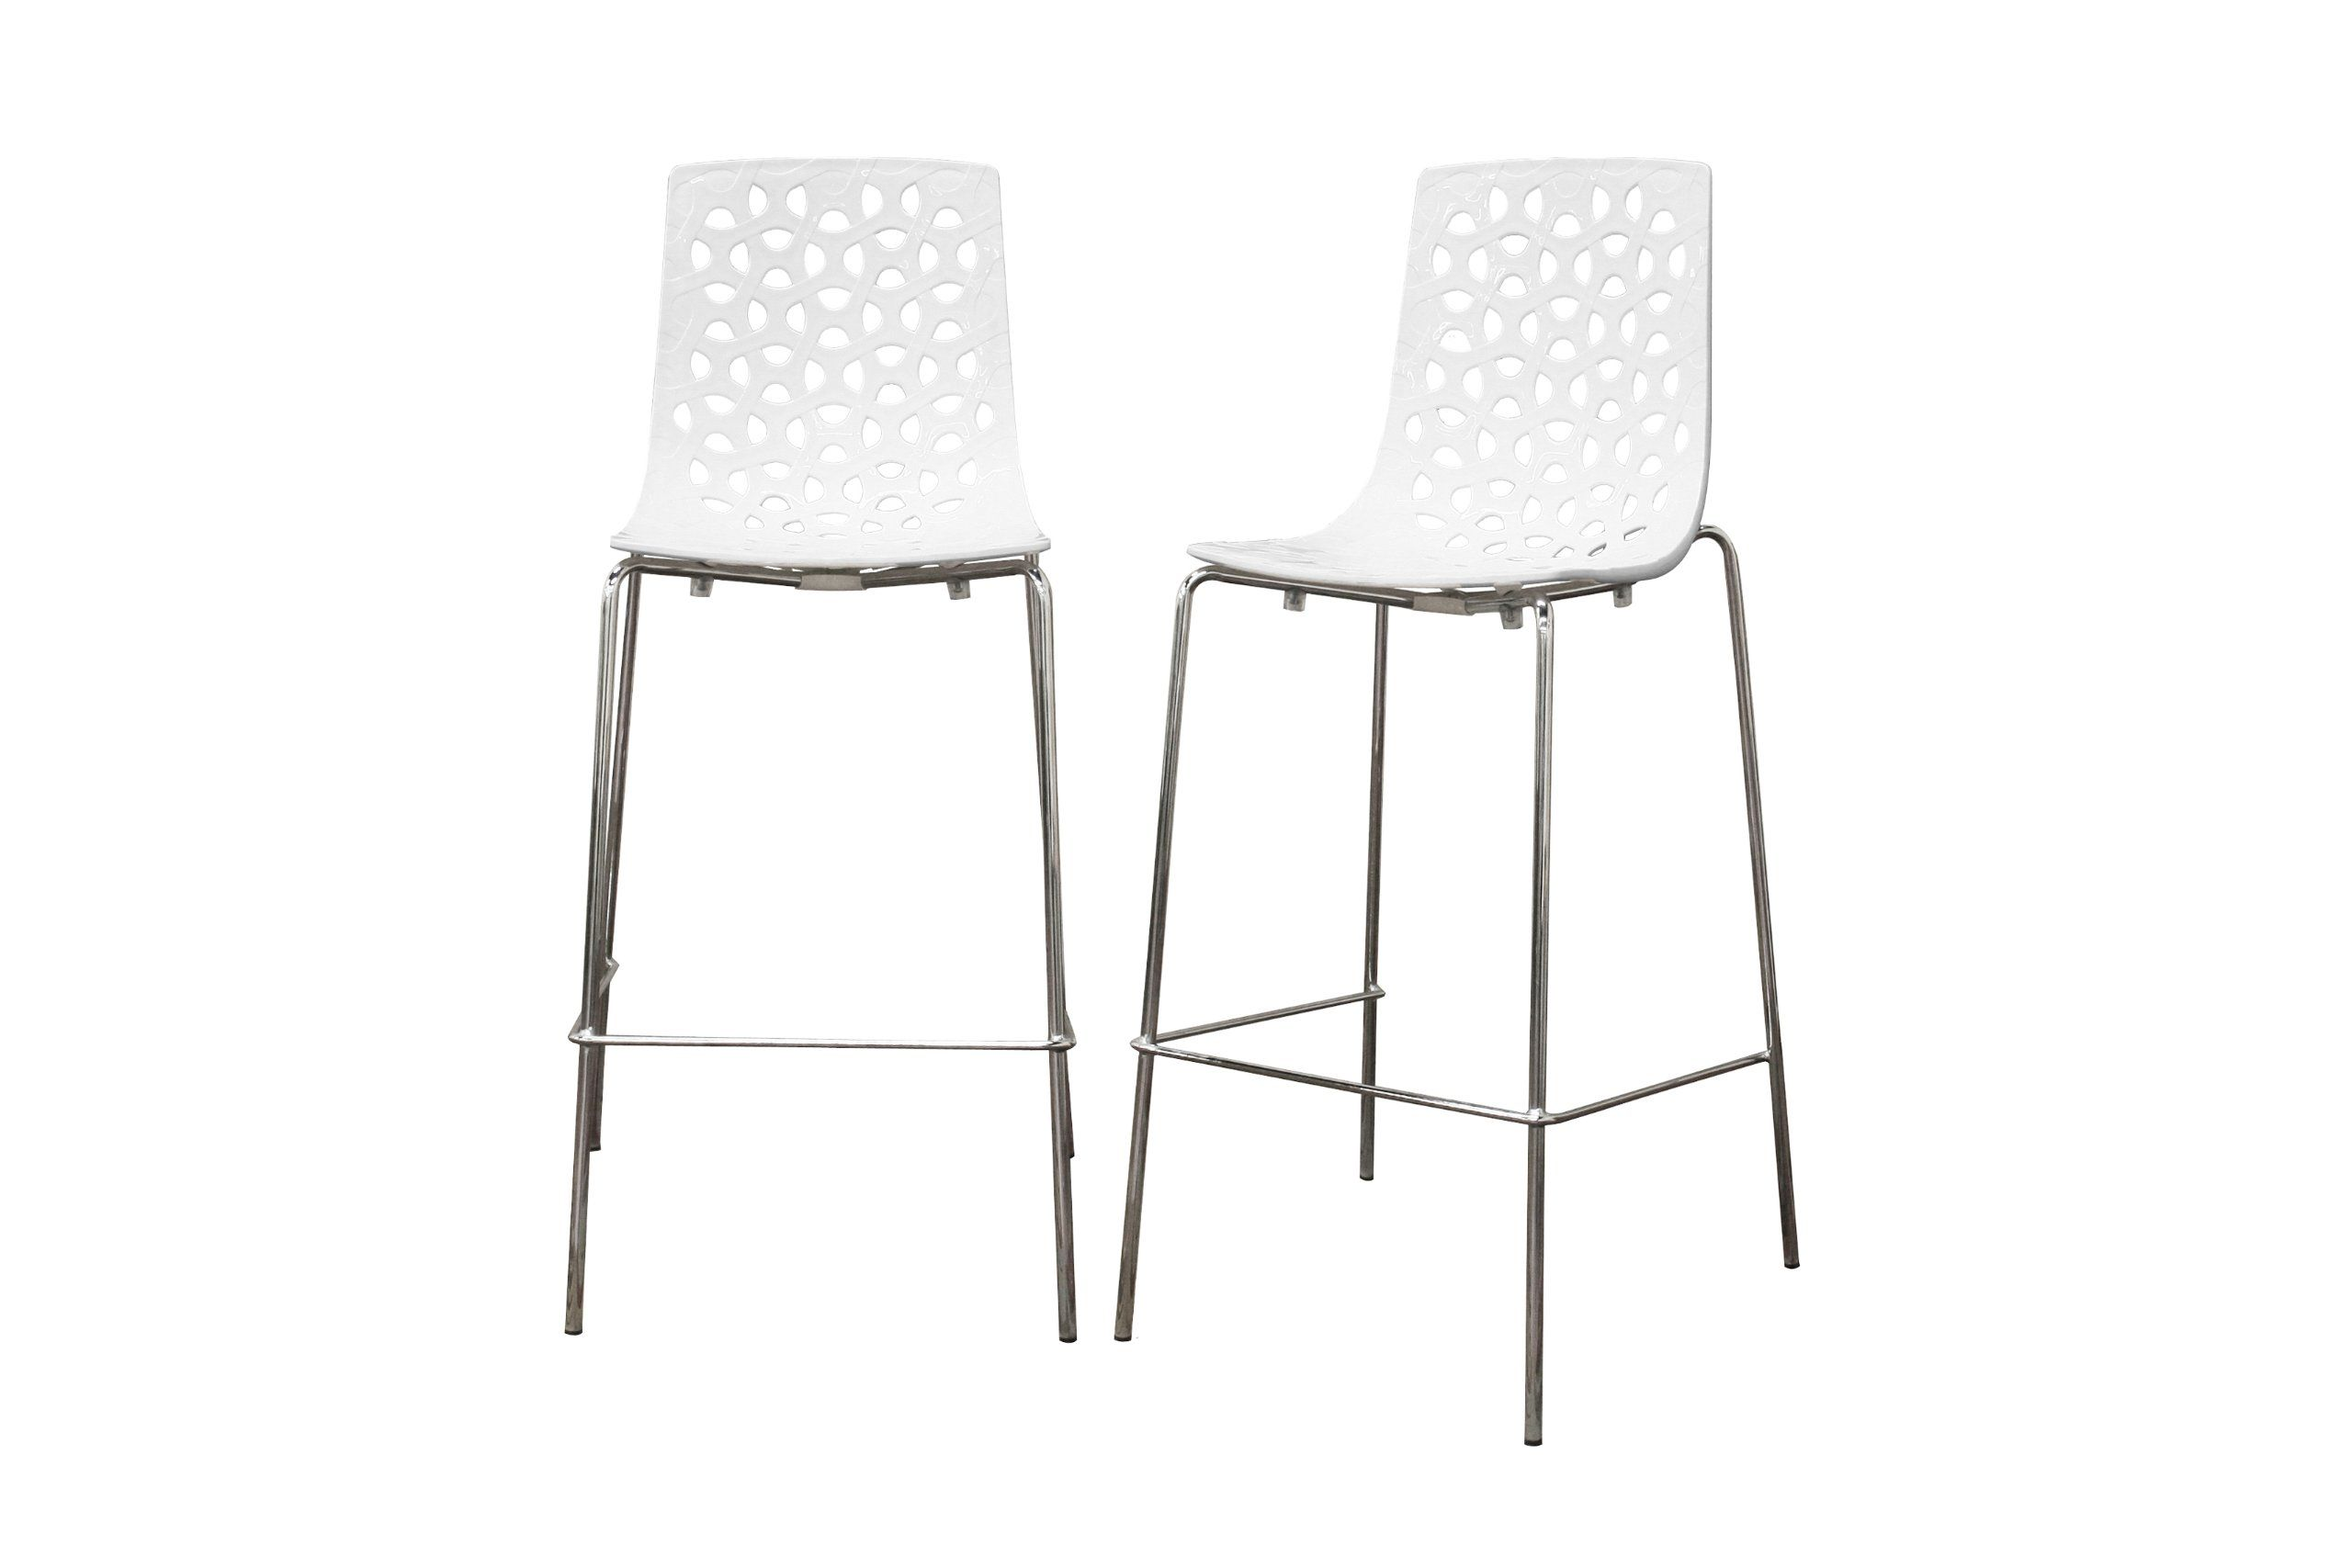 Contemporary White Gloss Barstool Come With Stainless Steel Frame And U Shaped Footrest Also Four